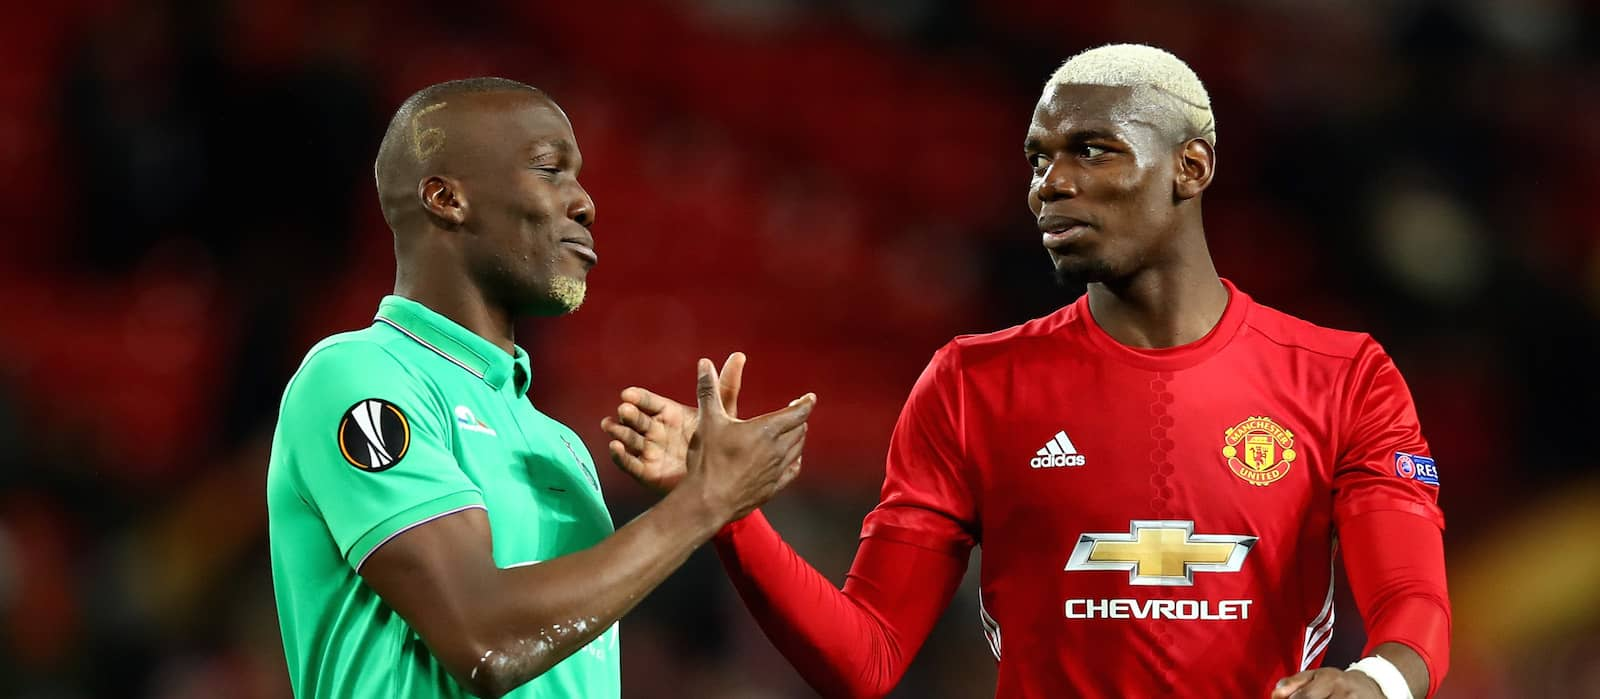 St Etienne vs Manchester United: Predicted XI